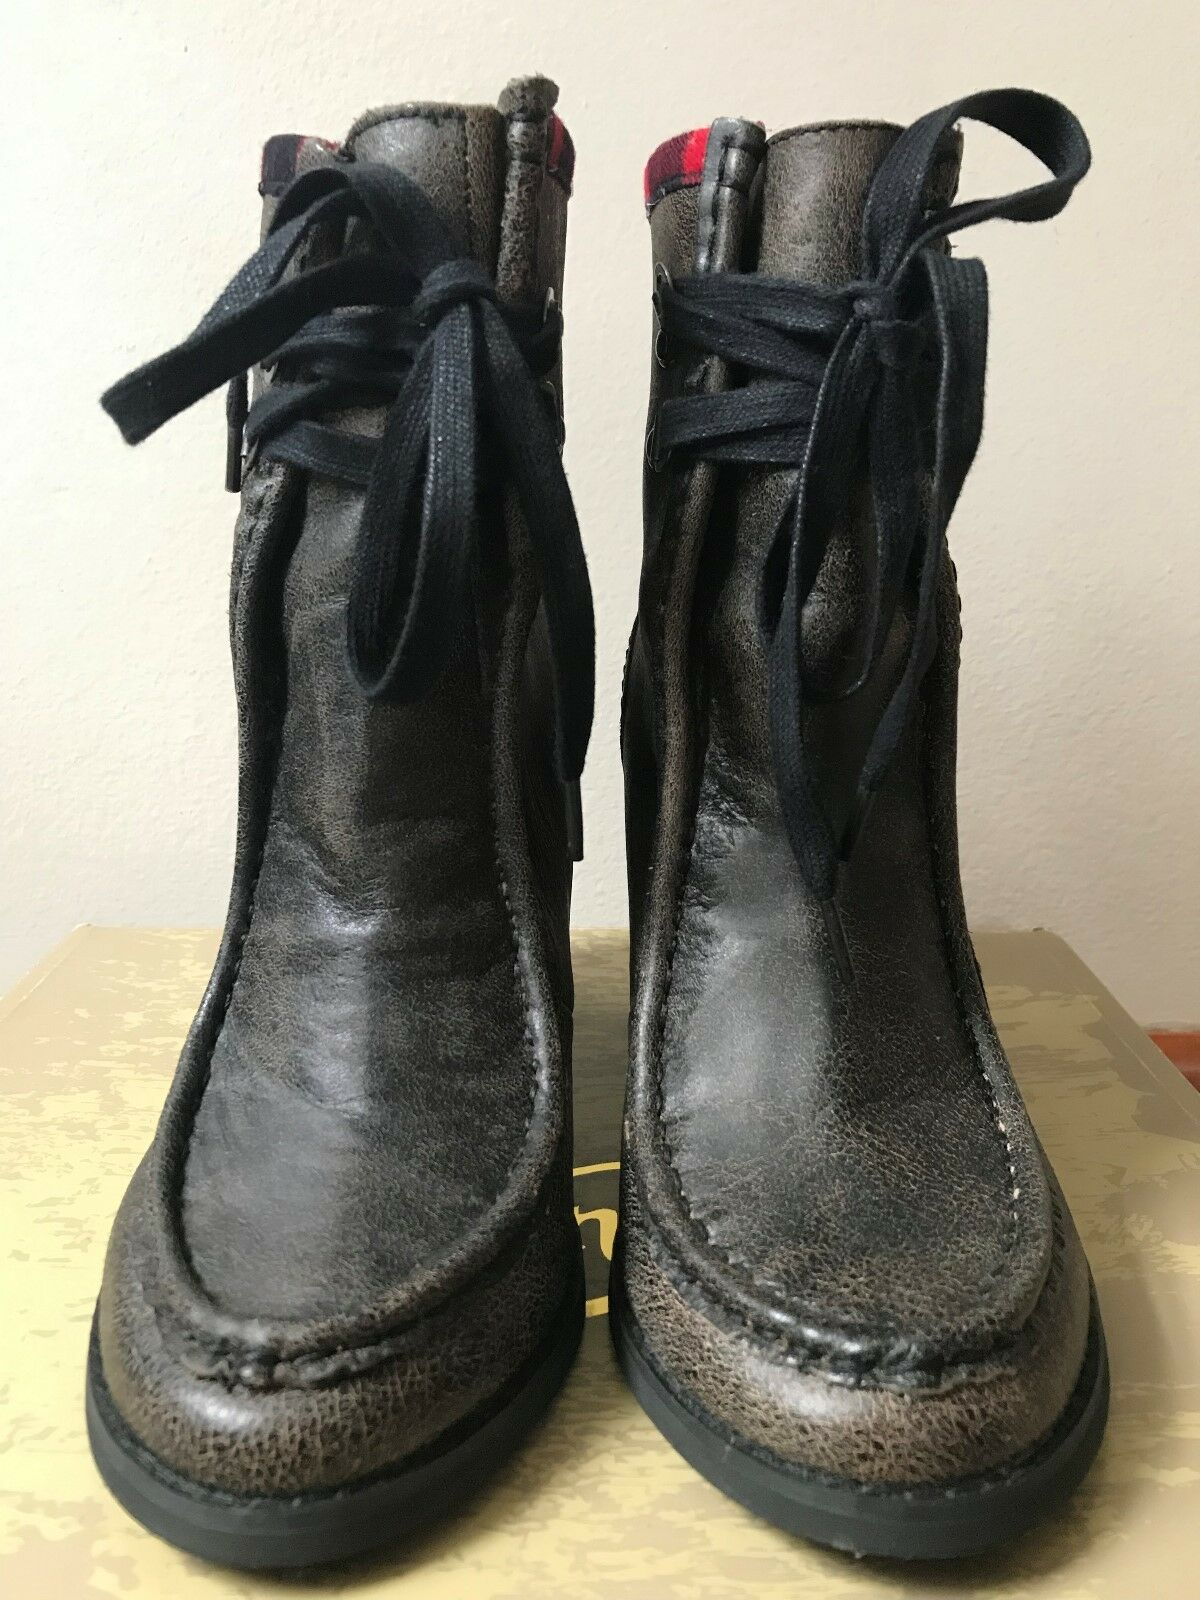 Von Von Von Dutch size 7M Rusty Black Leather Boots Women's shoes c3b407